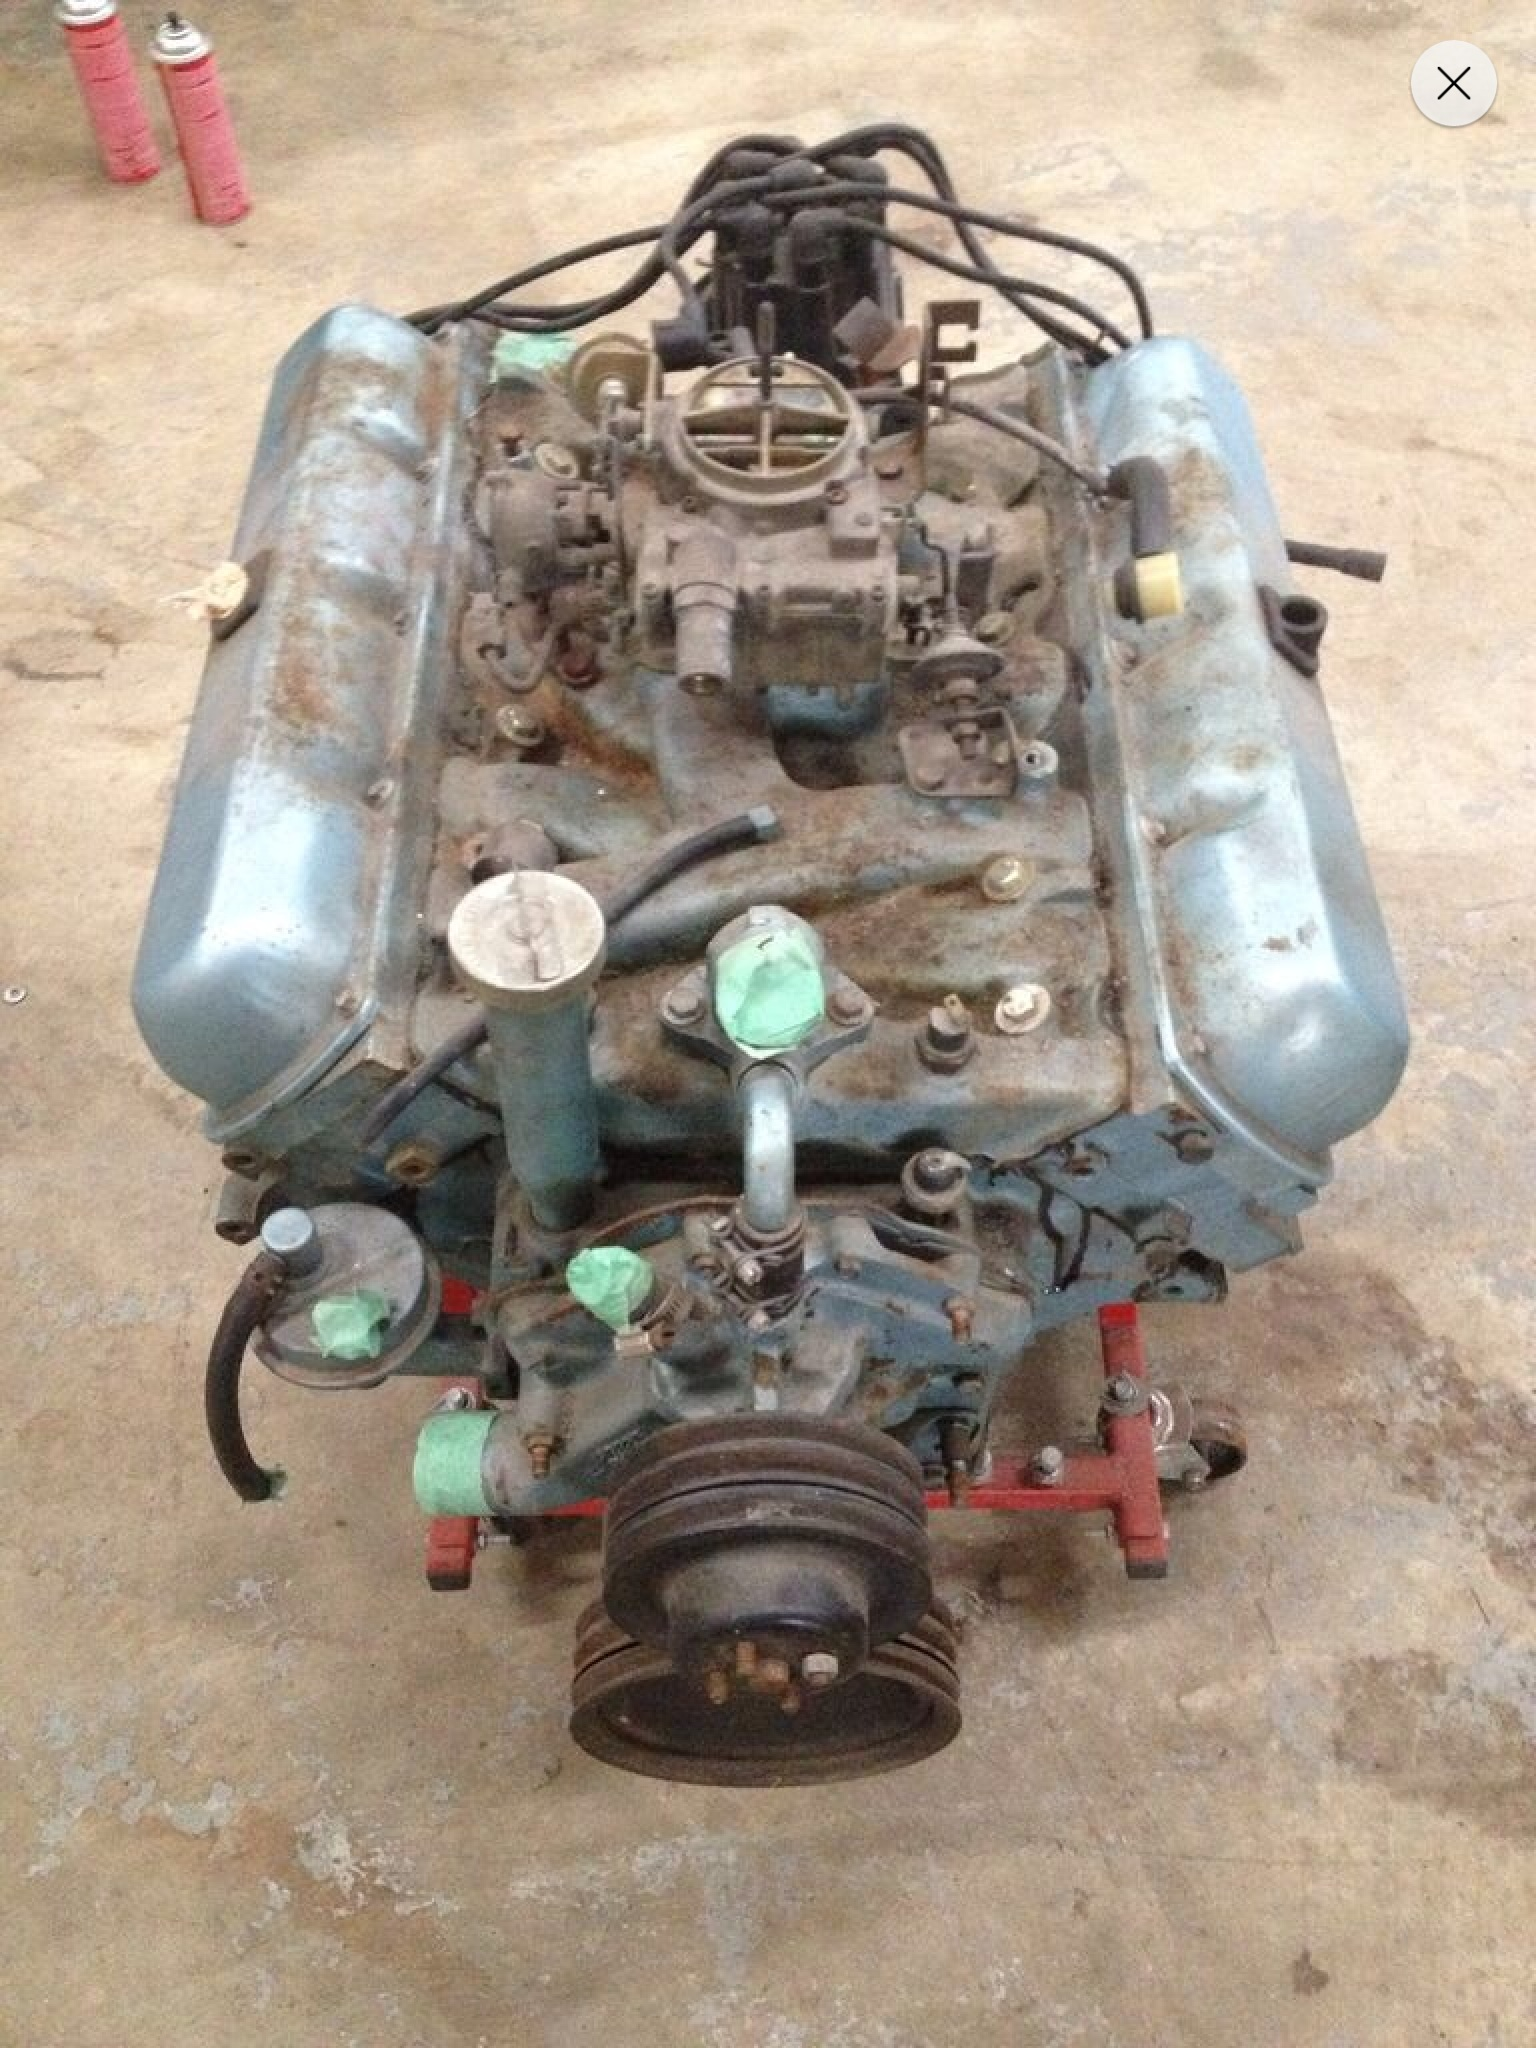 1971 oldsmobile 350 and 350 transmission | The H A M B